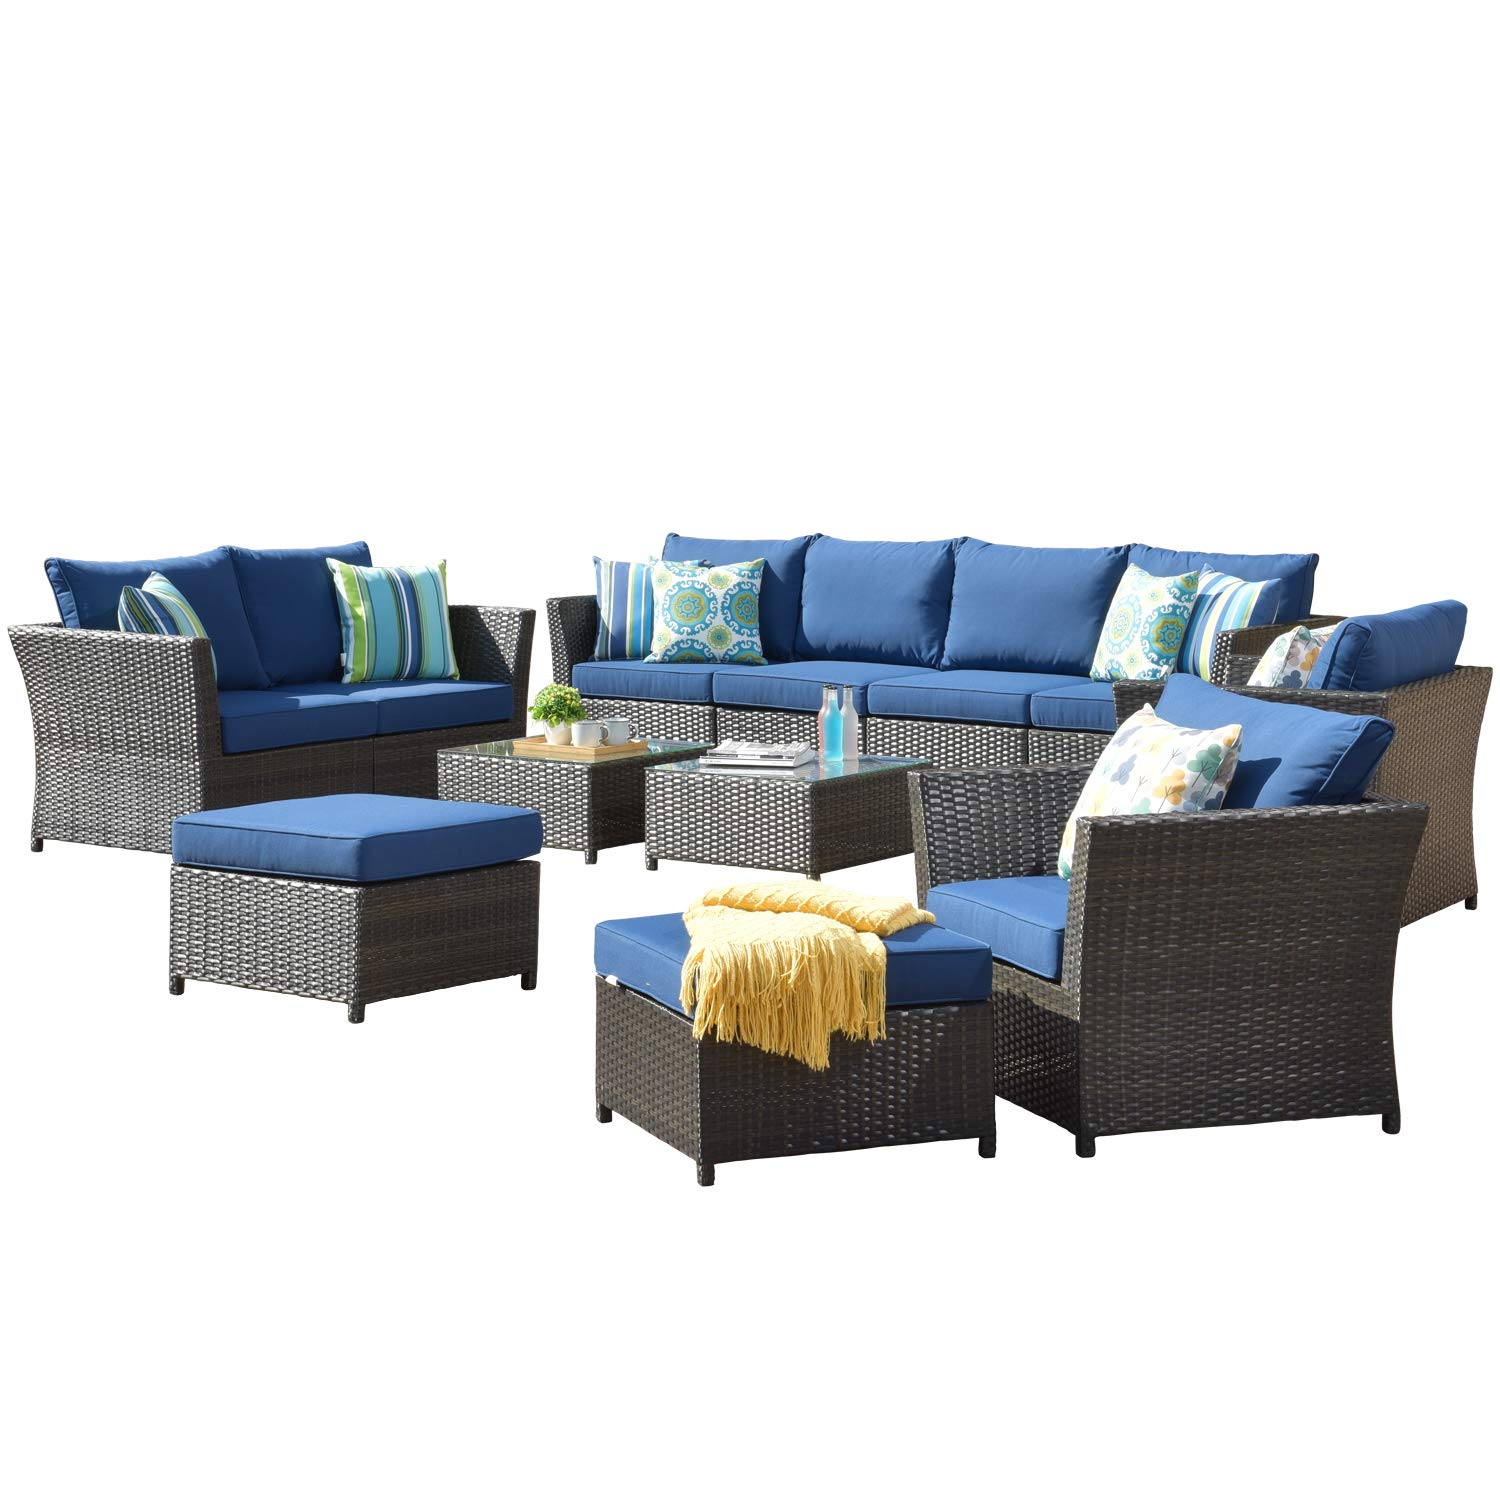 ovios Patio Furniture Set, Backyard Sofa Outdoor Furniture,PE Rattan Wicker sectional with Pillows and Coffee Table, No As...